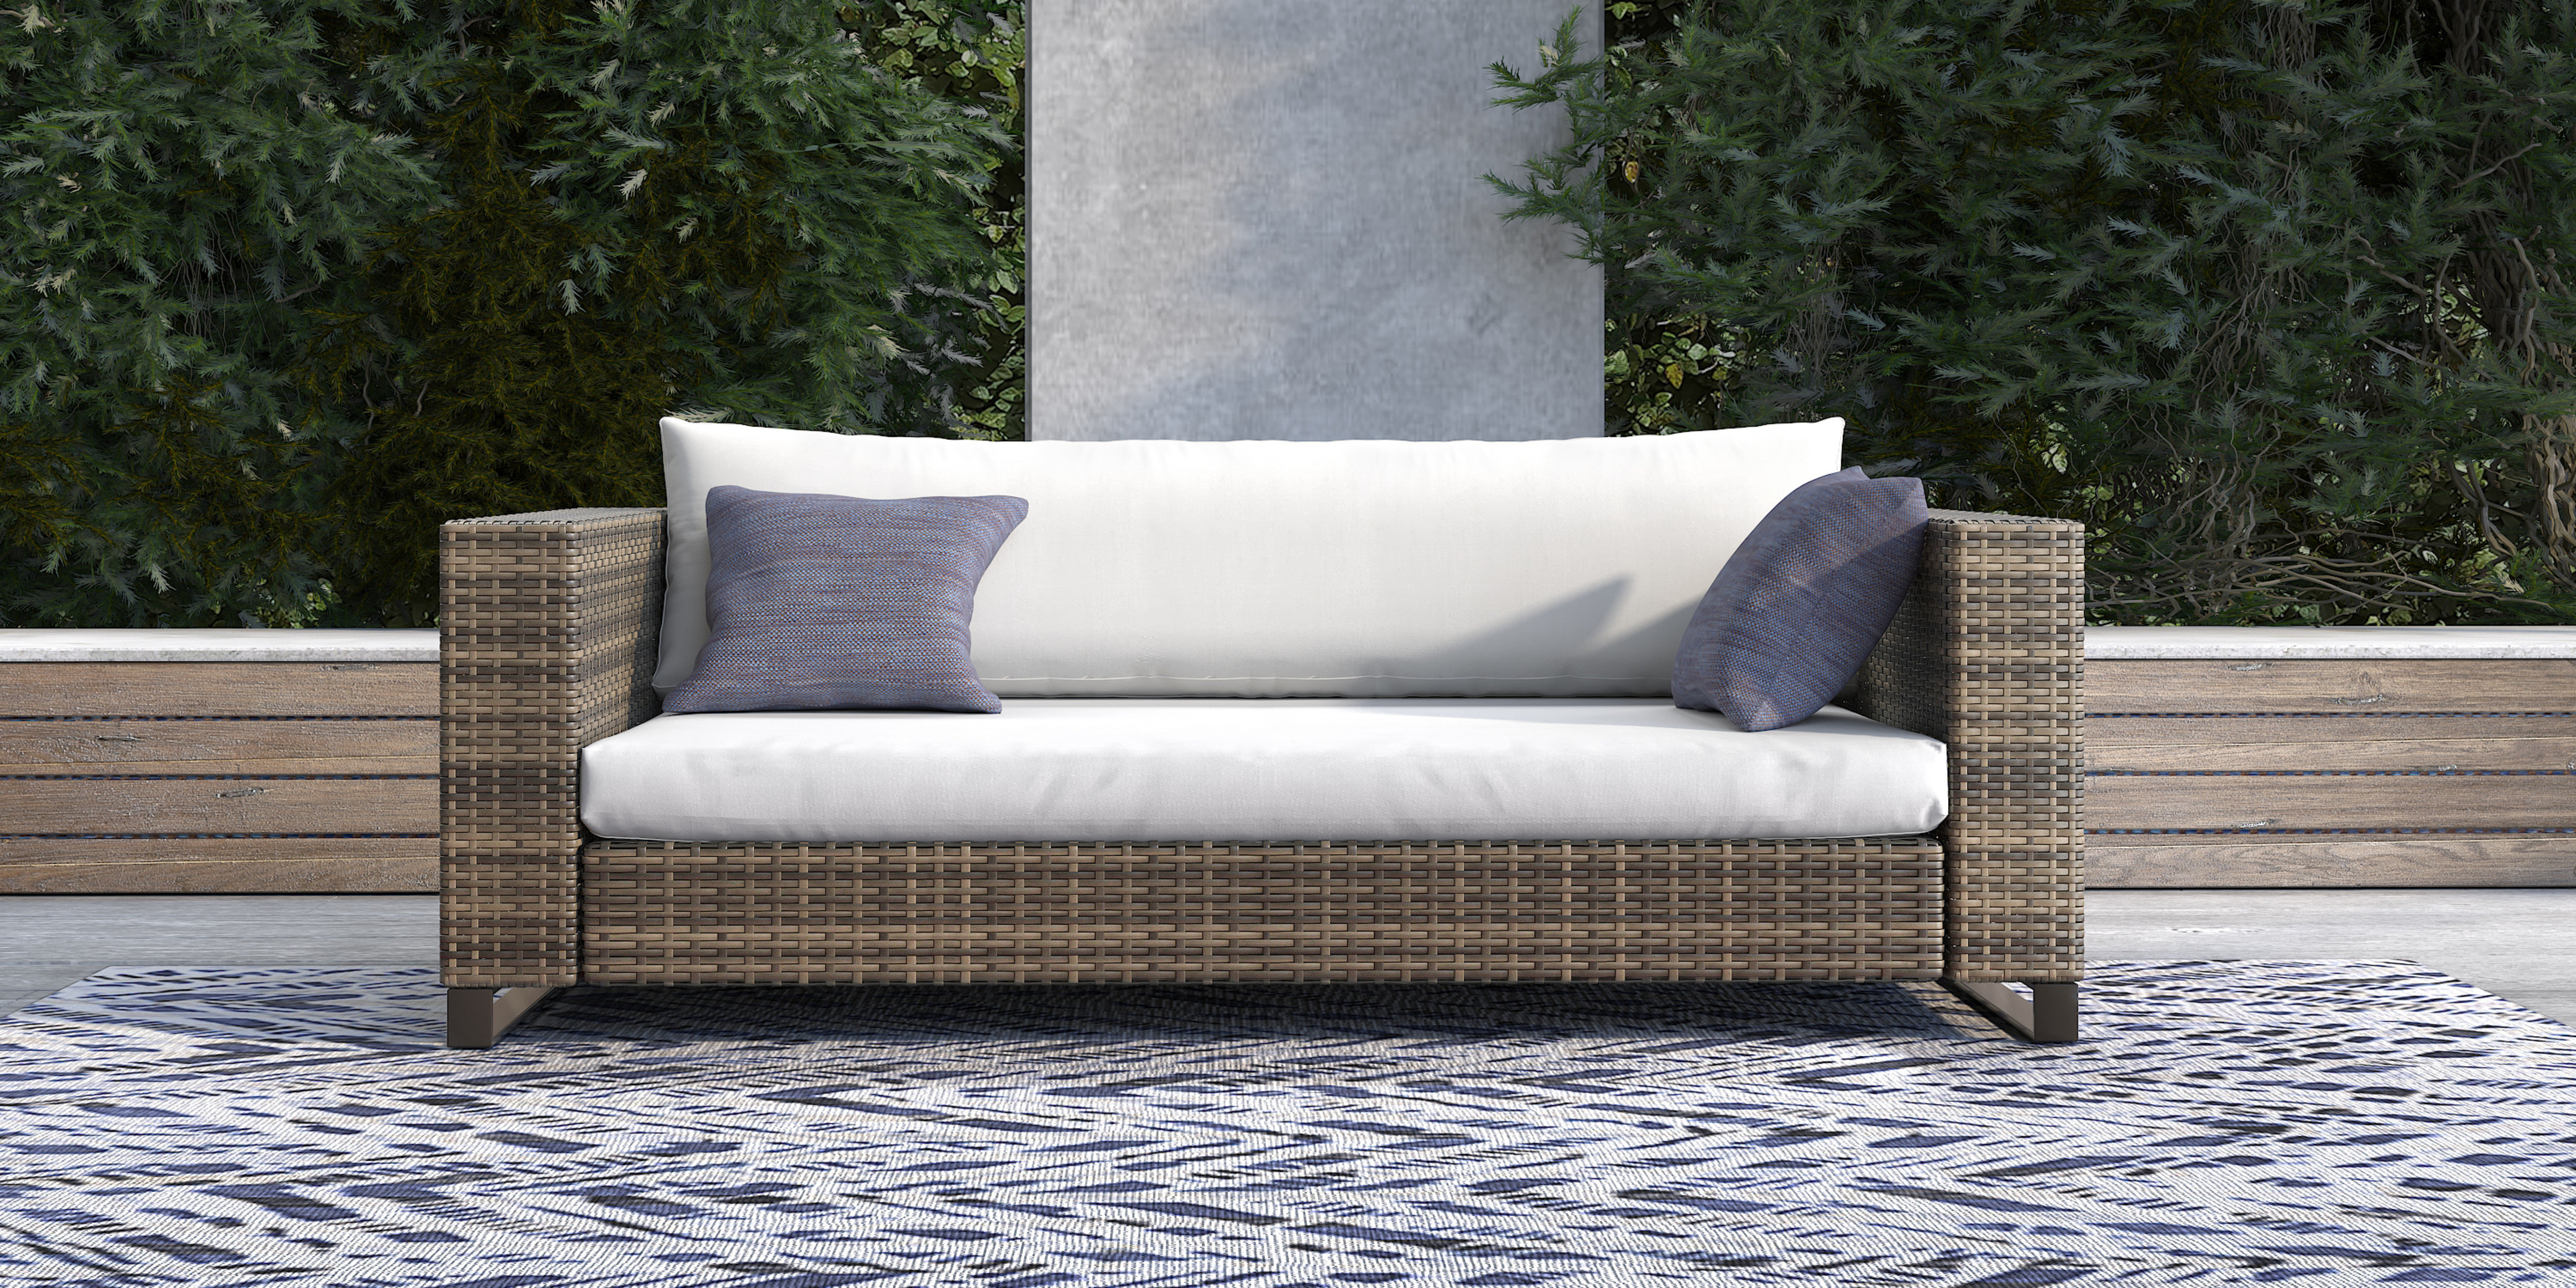 Oceanside Outdoor Wicker Loveseat With Cushions For Most Current Newbury Patio Sofas With Cushions (View 20 of 20)